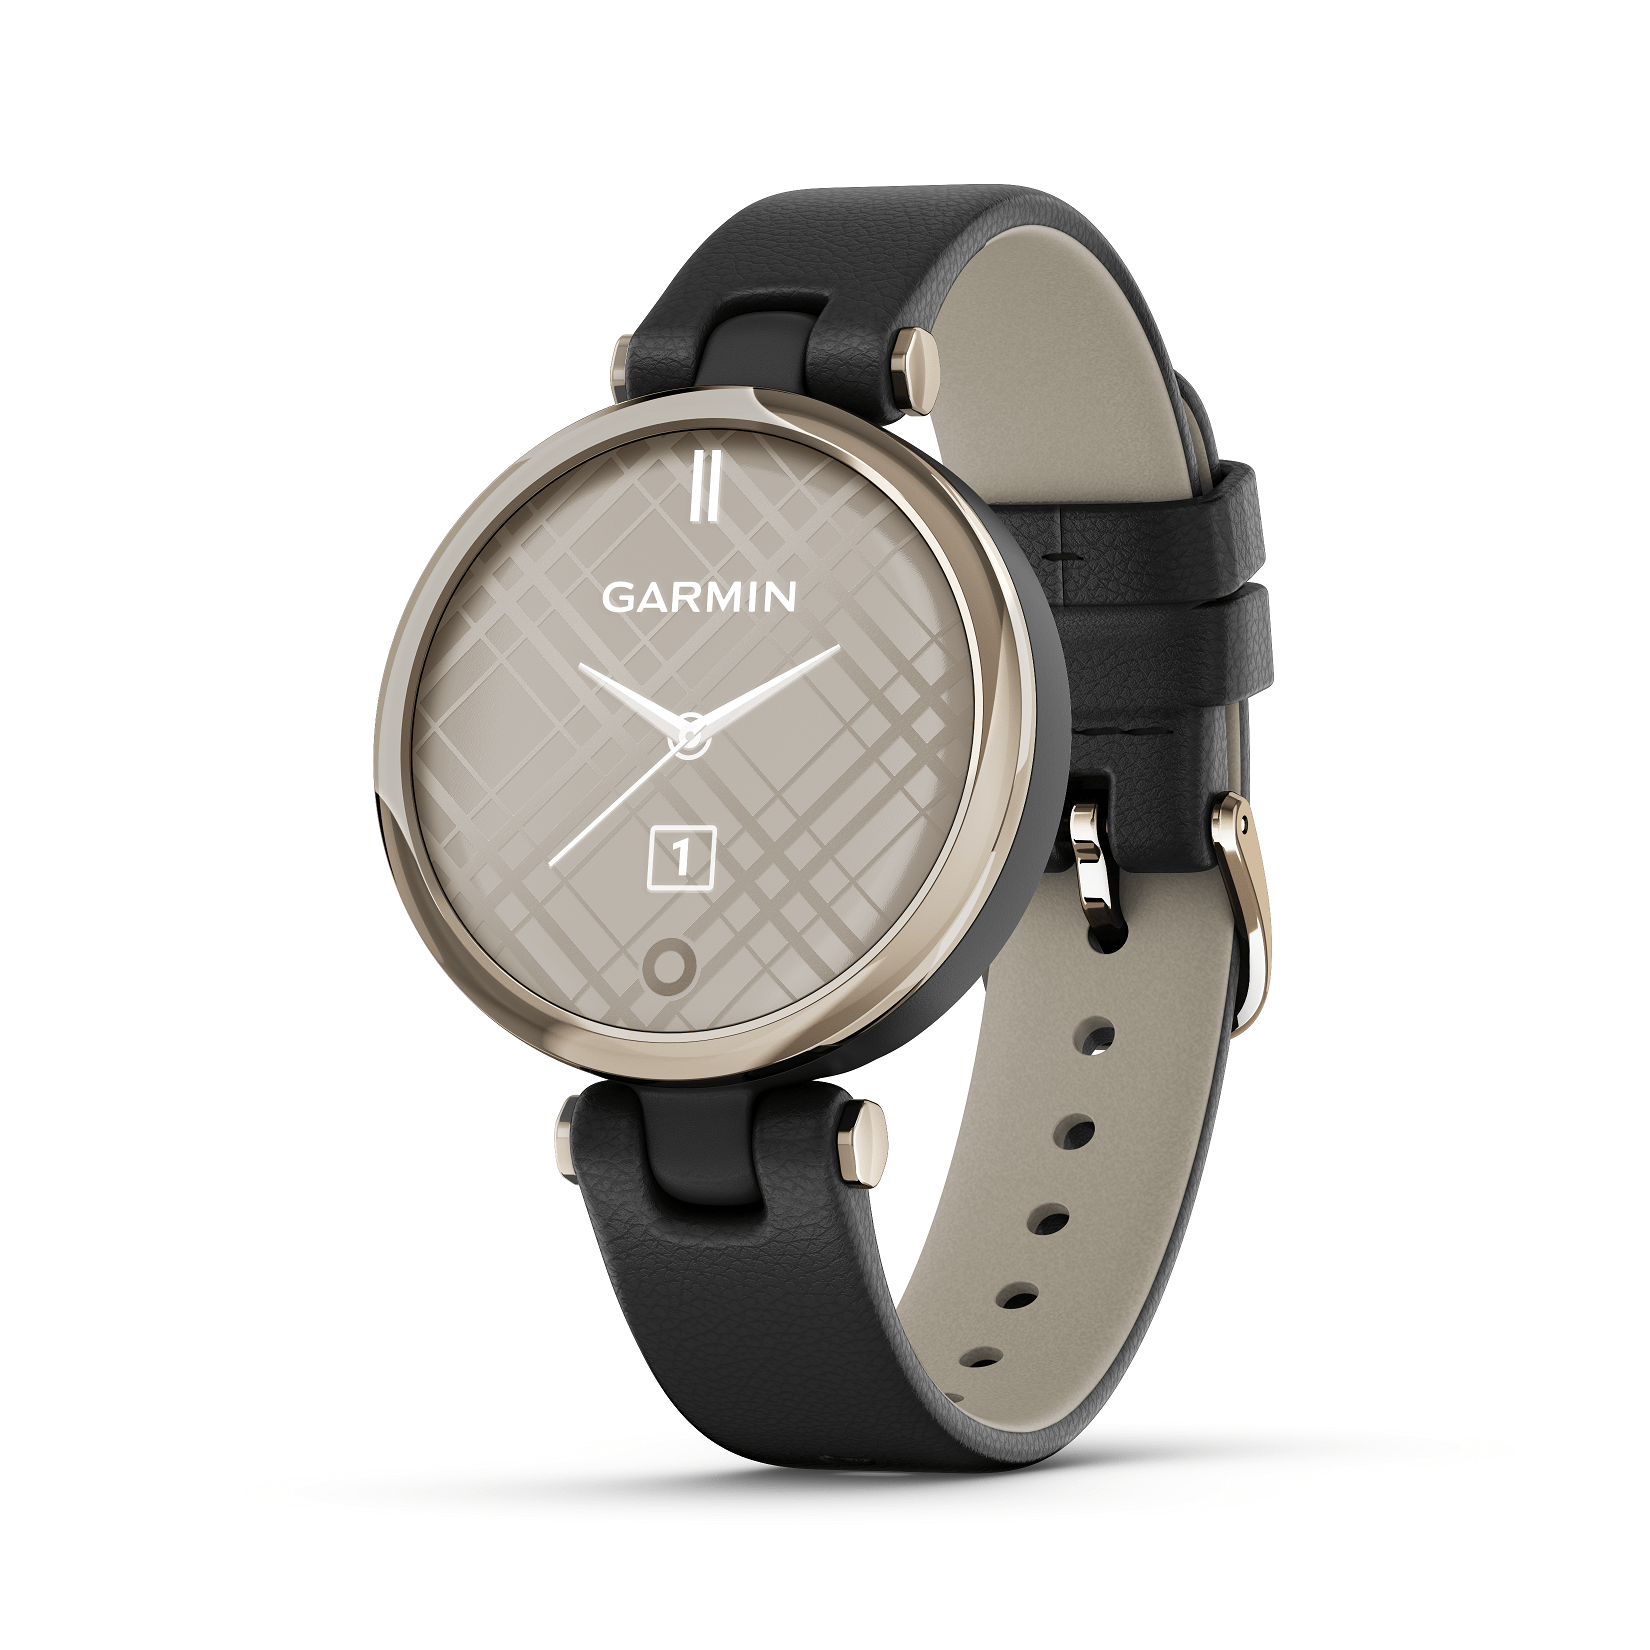 Garmin Activity Monitors Garmin Lily Smartwatch with Activity Tracking